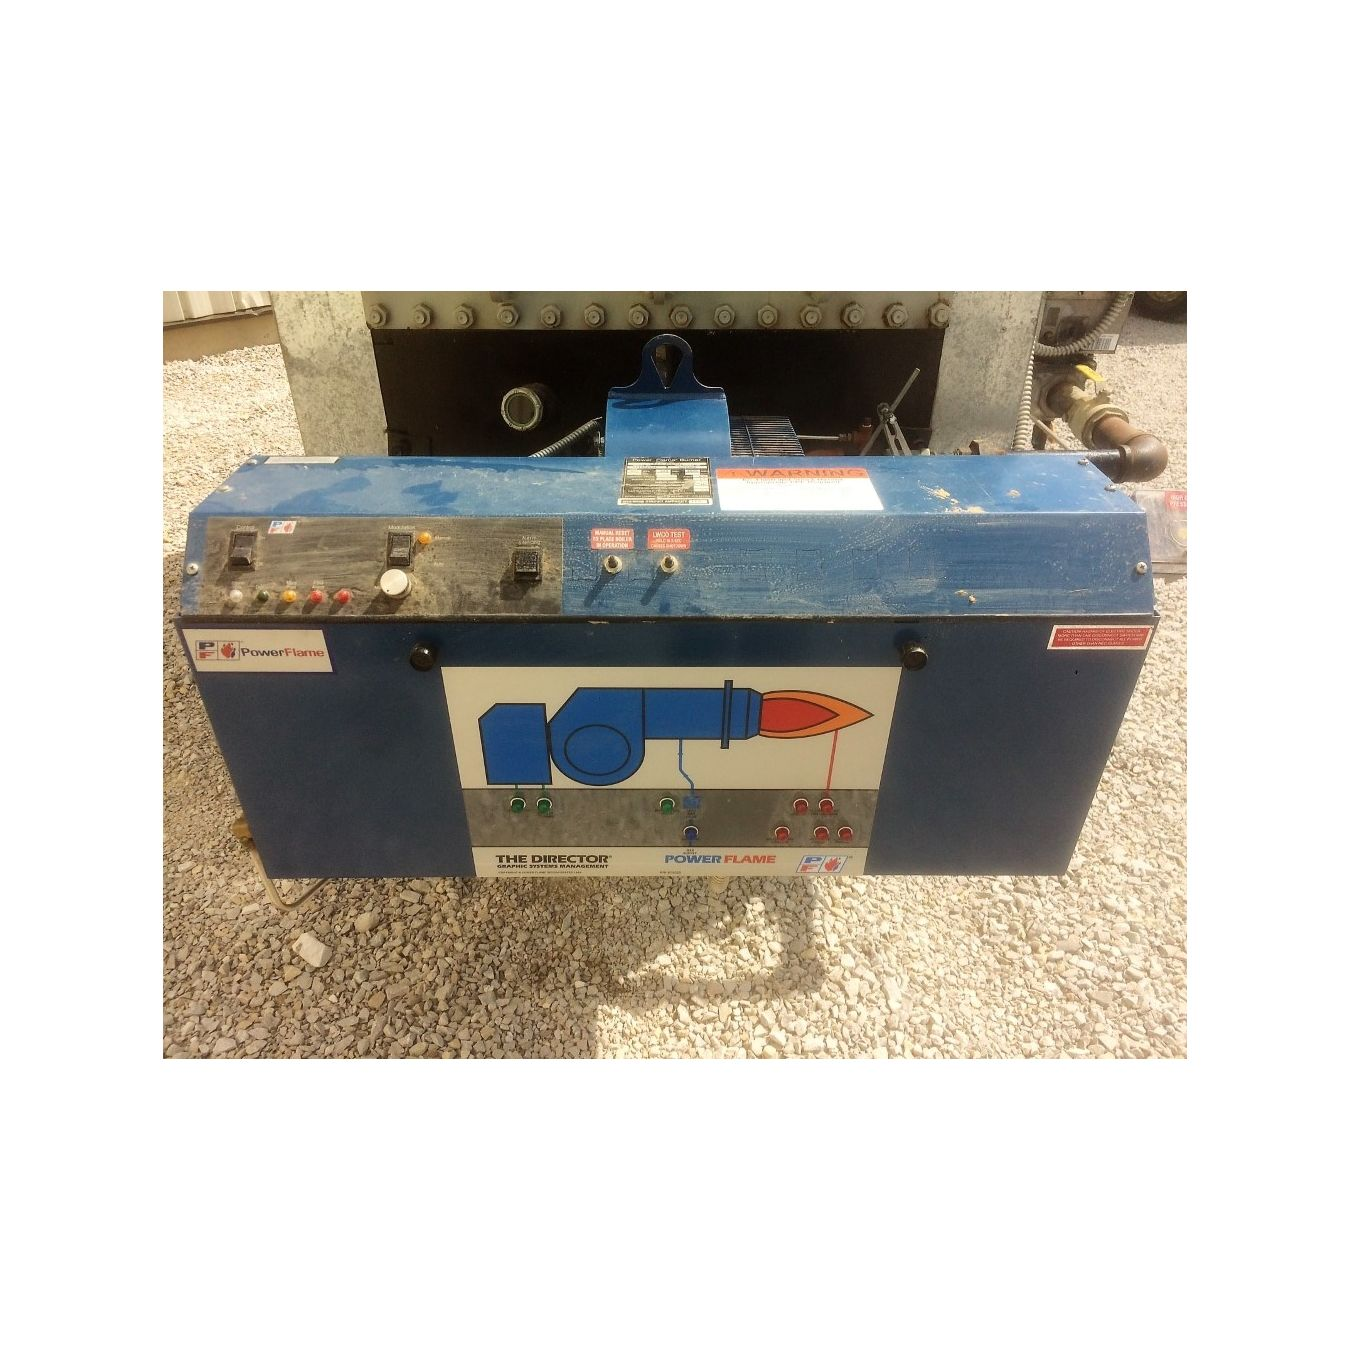 ... Used AJAX Industrial Boiler Forced Draft Gas Hot Boiler Water Heater WRFG-3000 ...